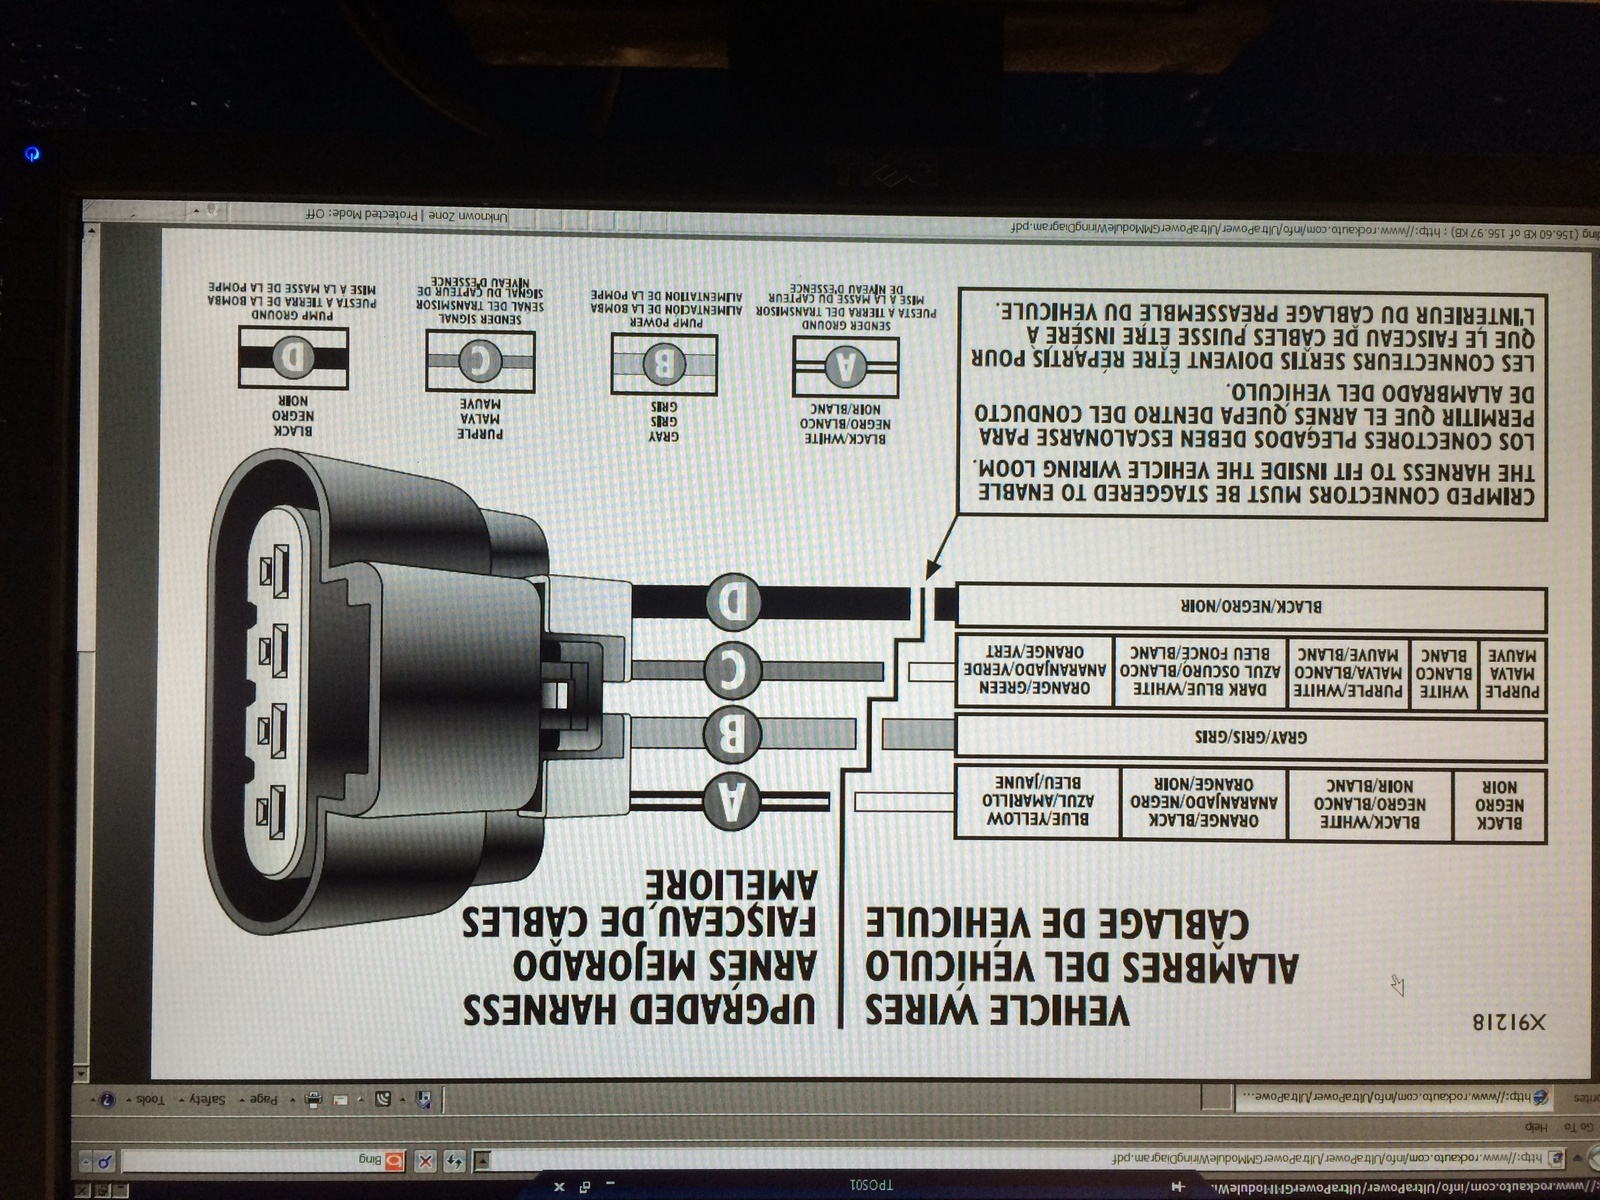 2001 gmc sierra trailer wiring diagram 2000 dodge neon starter 4 pin 02 blazer free engine